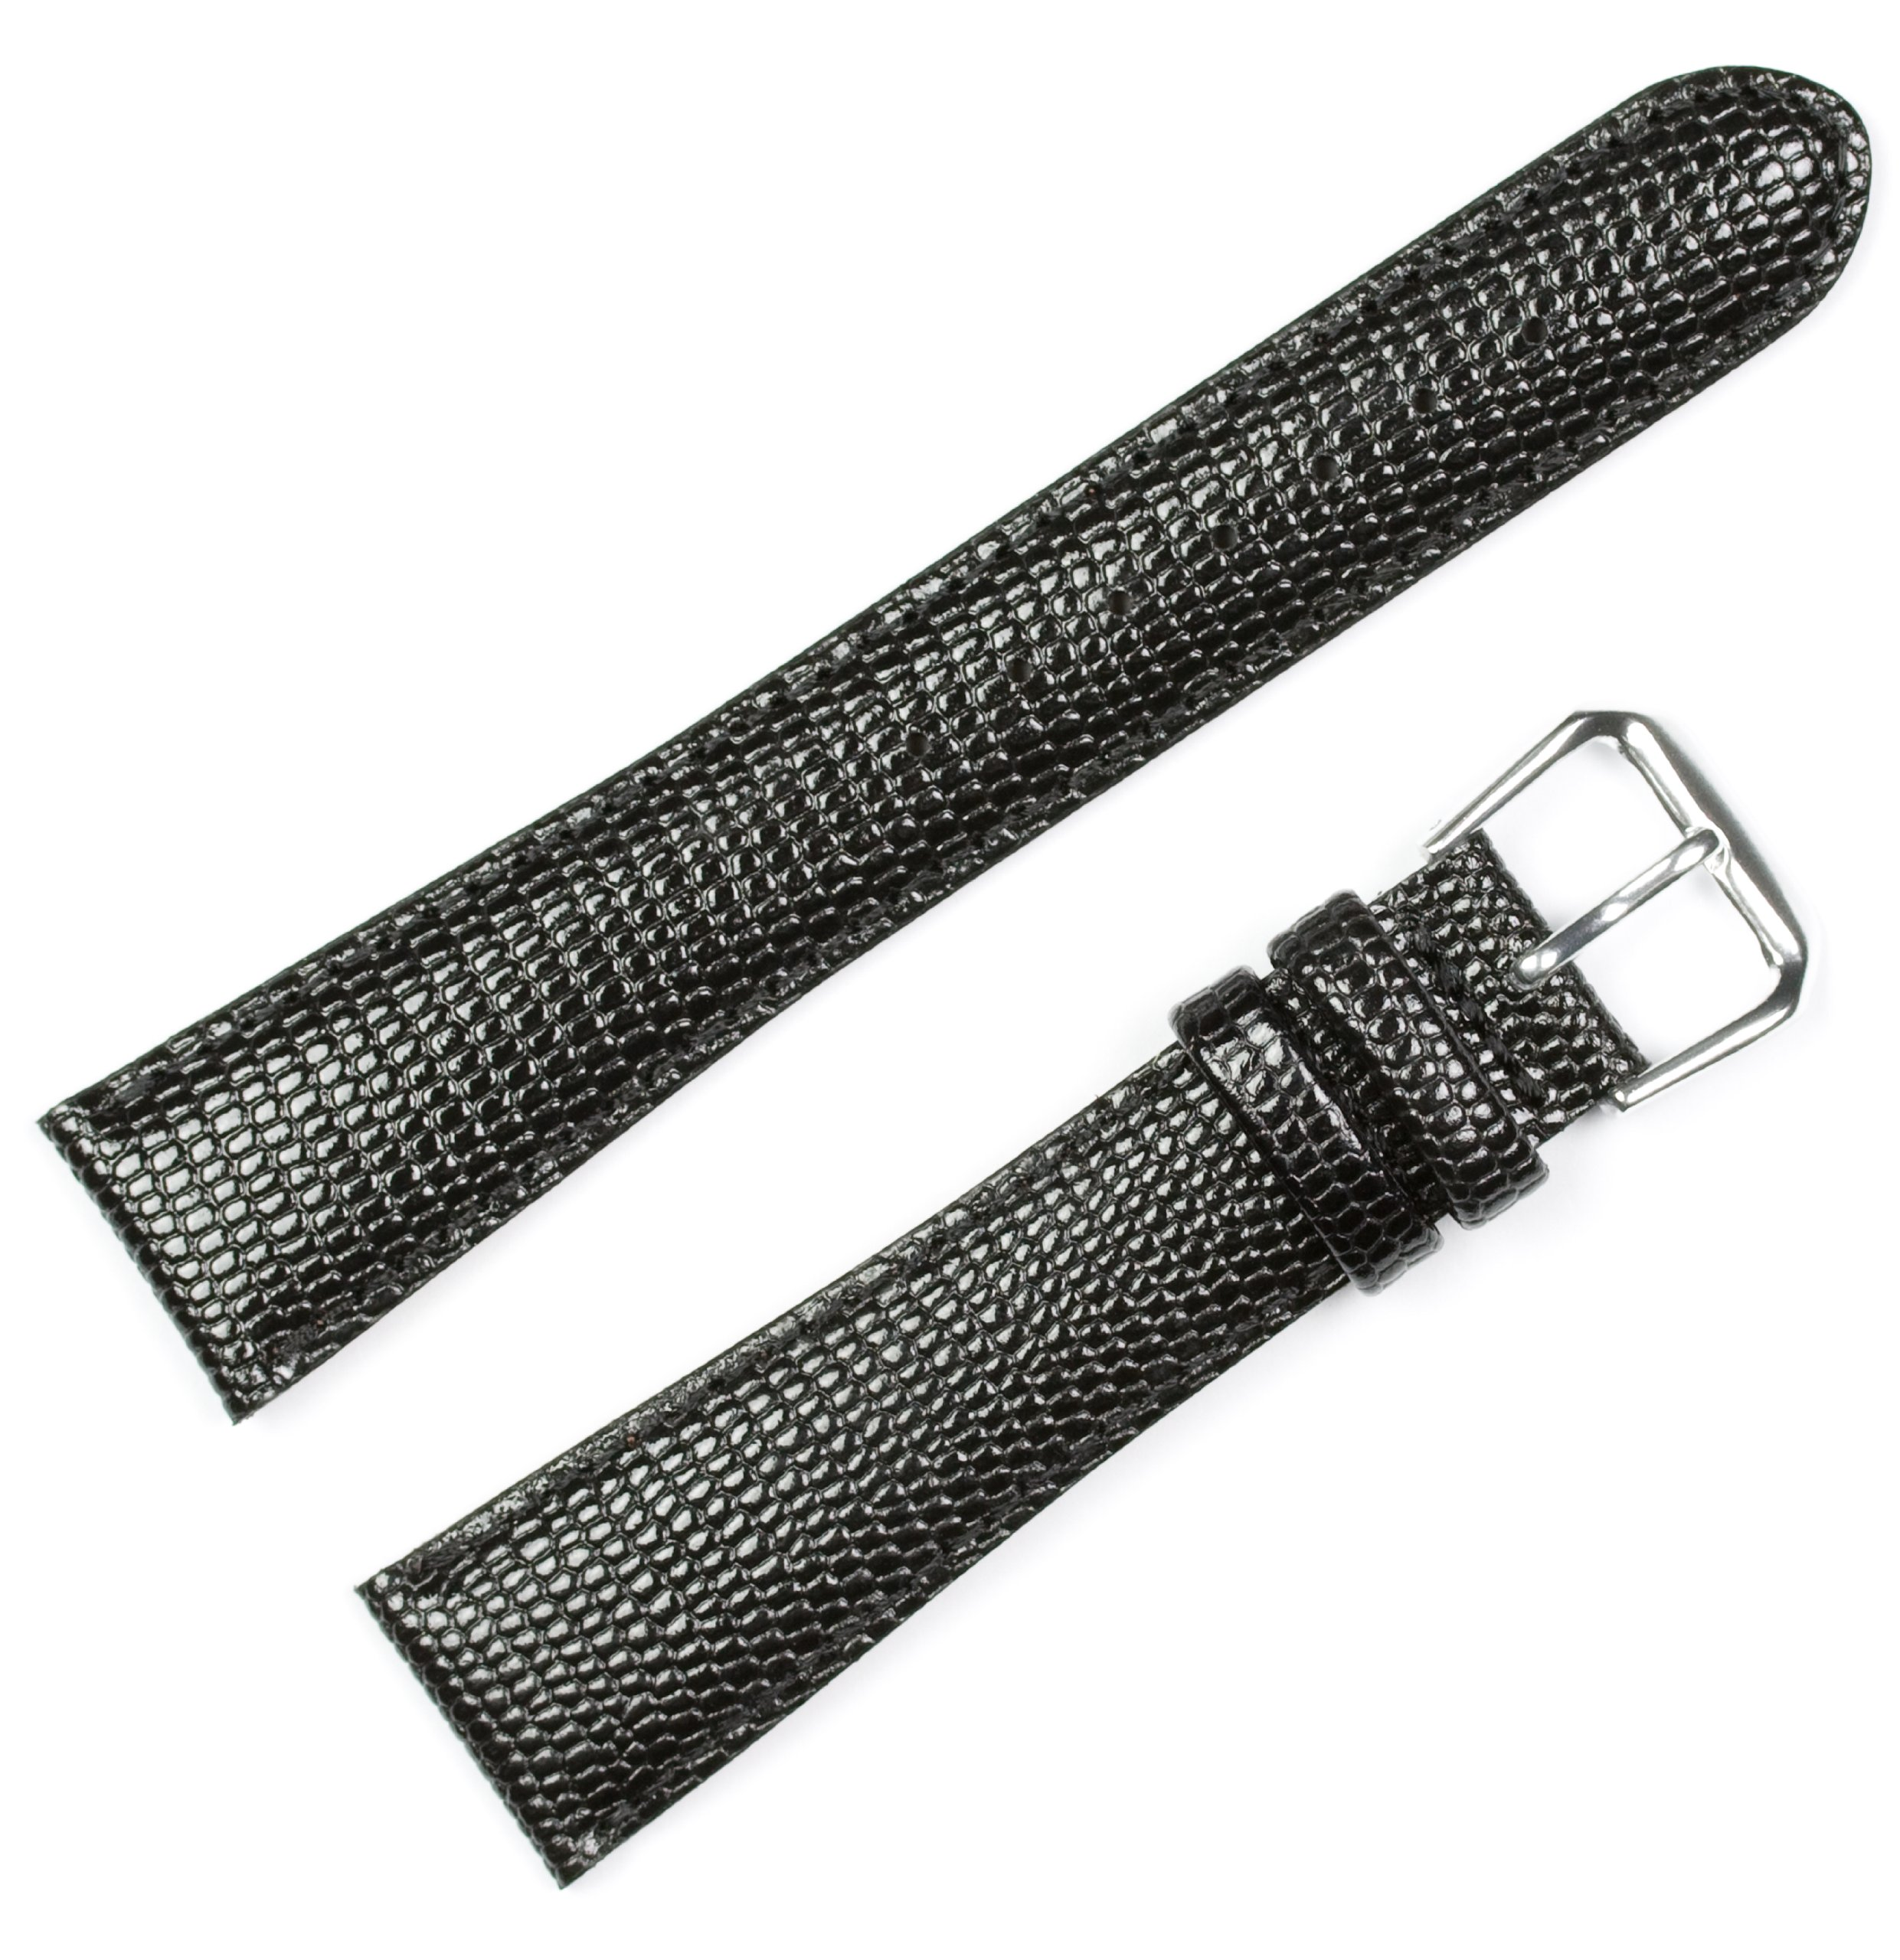 Lizard Grain Watchband Black 20mm Watch band - by deBeer by deBeer (Image #1)